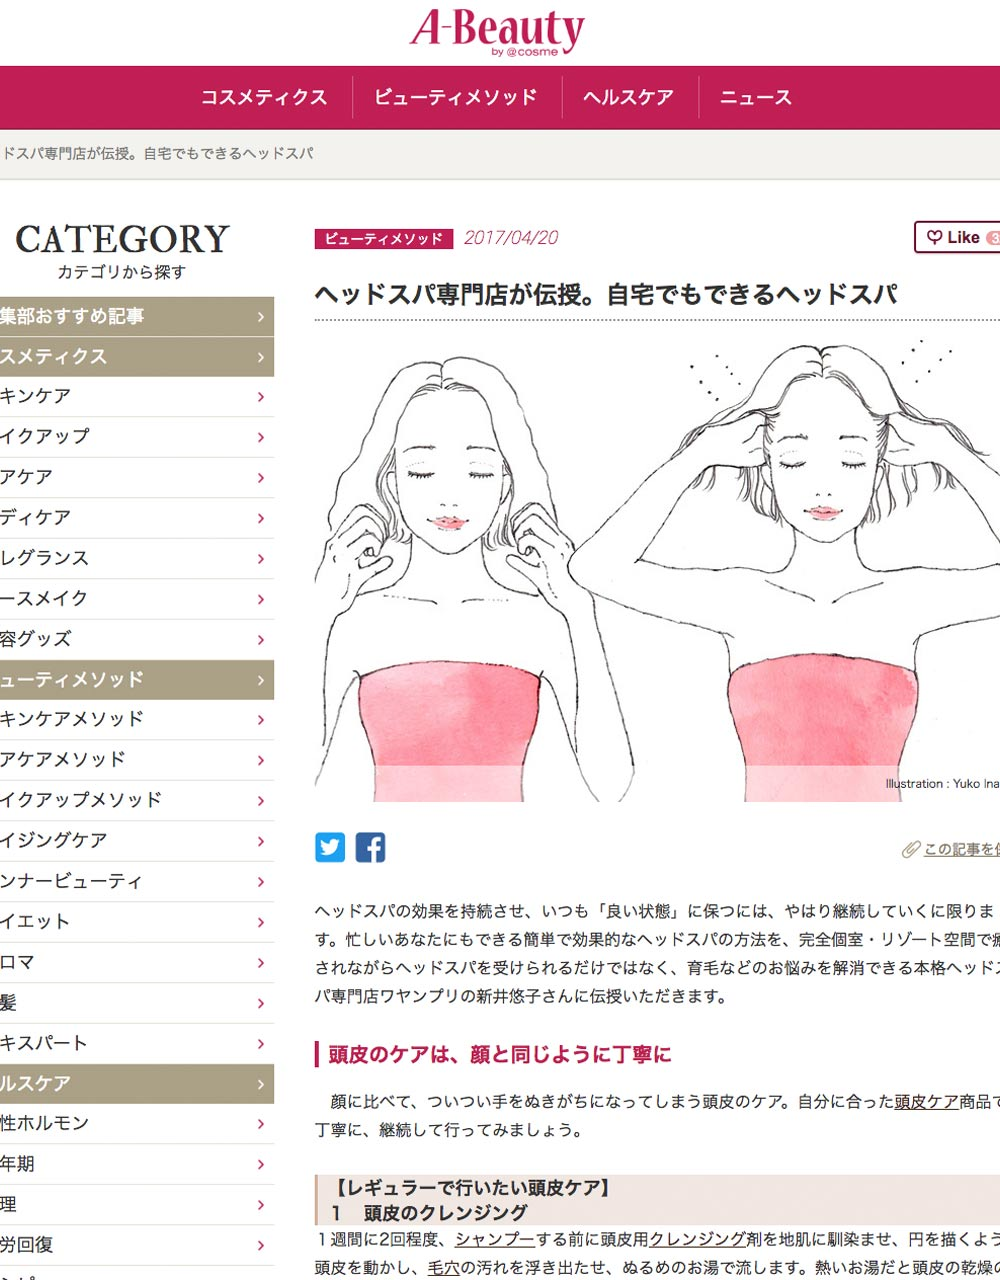 A-Beauty by @cosme に取材されました